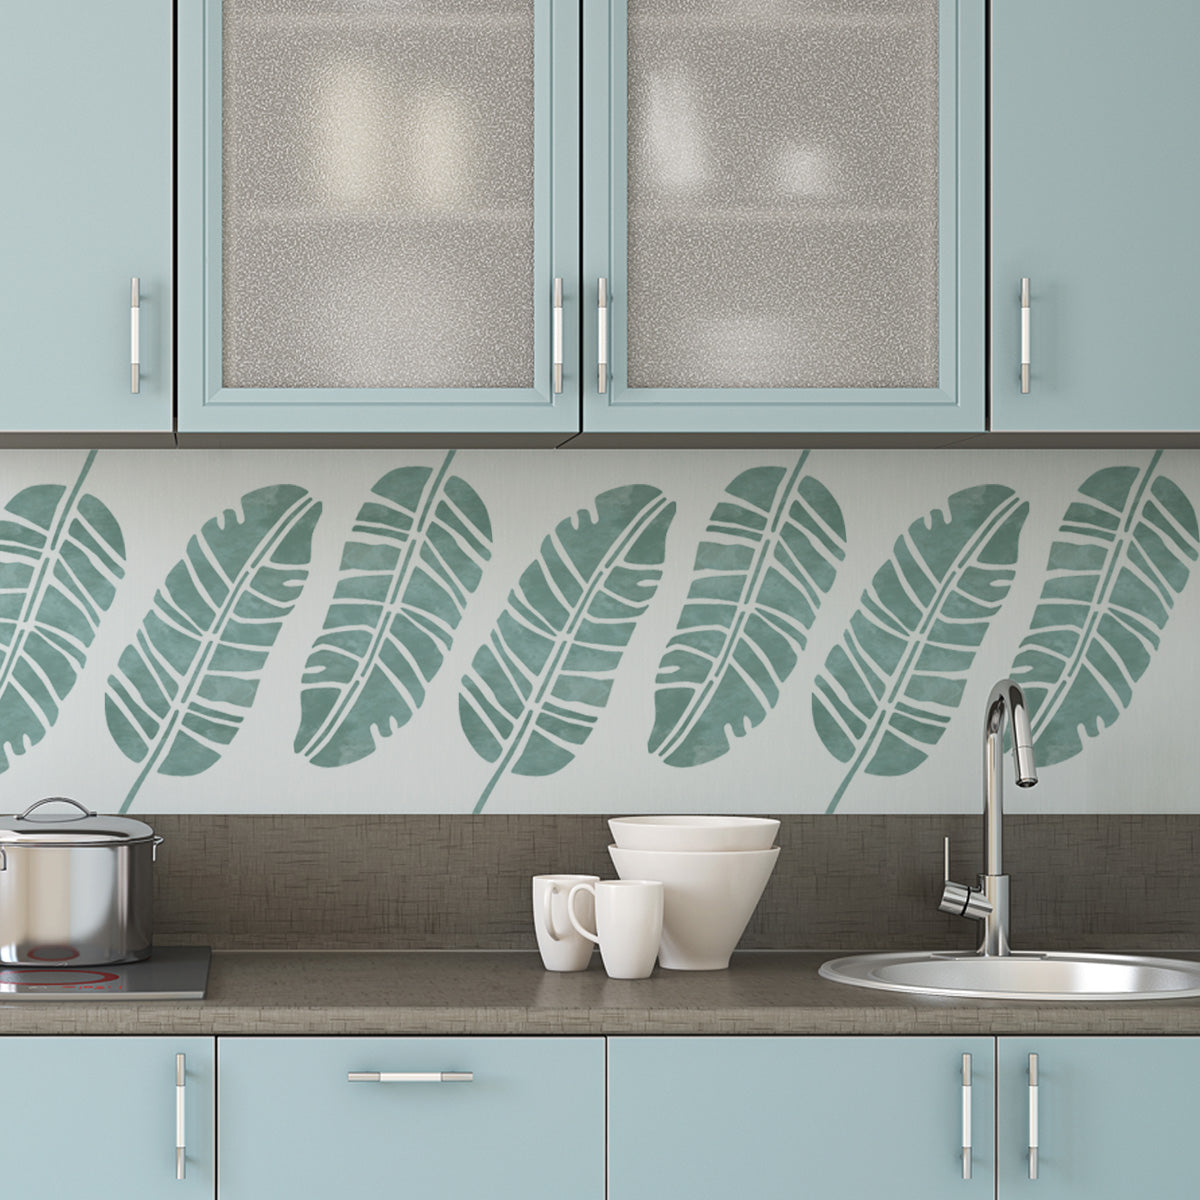 CraftStar Large Banana Leaf Stencil in kitchen